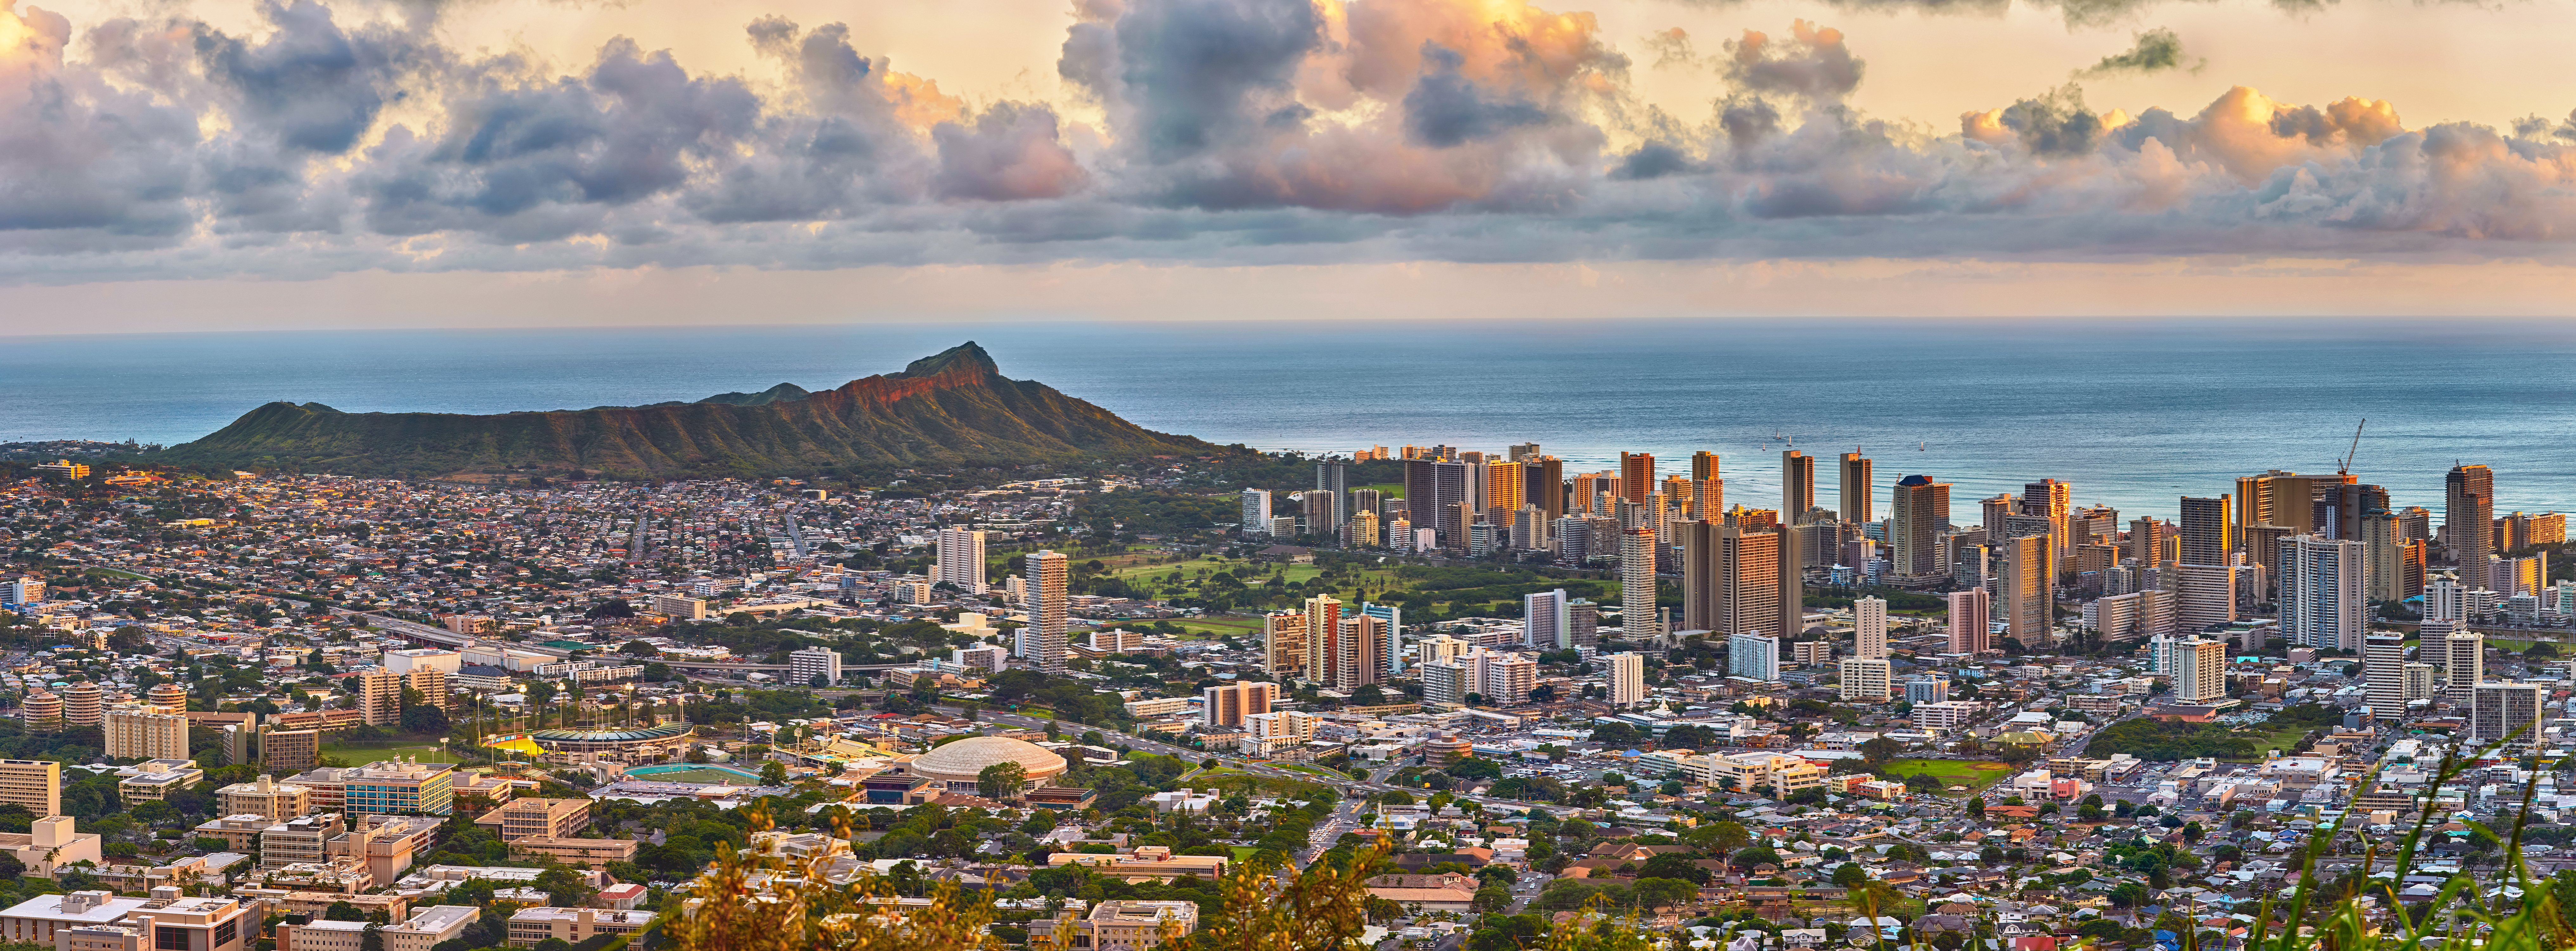 overheard view of Honolulu offices at Sunset